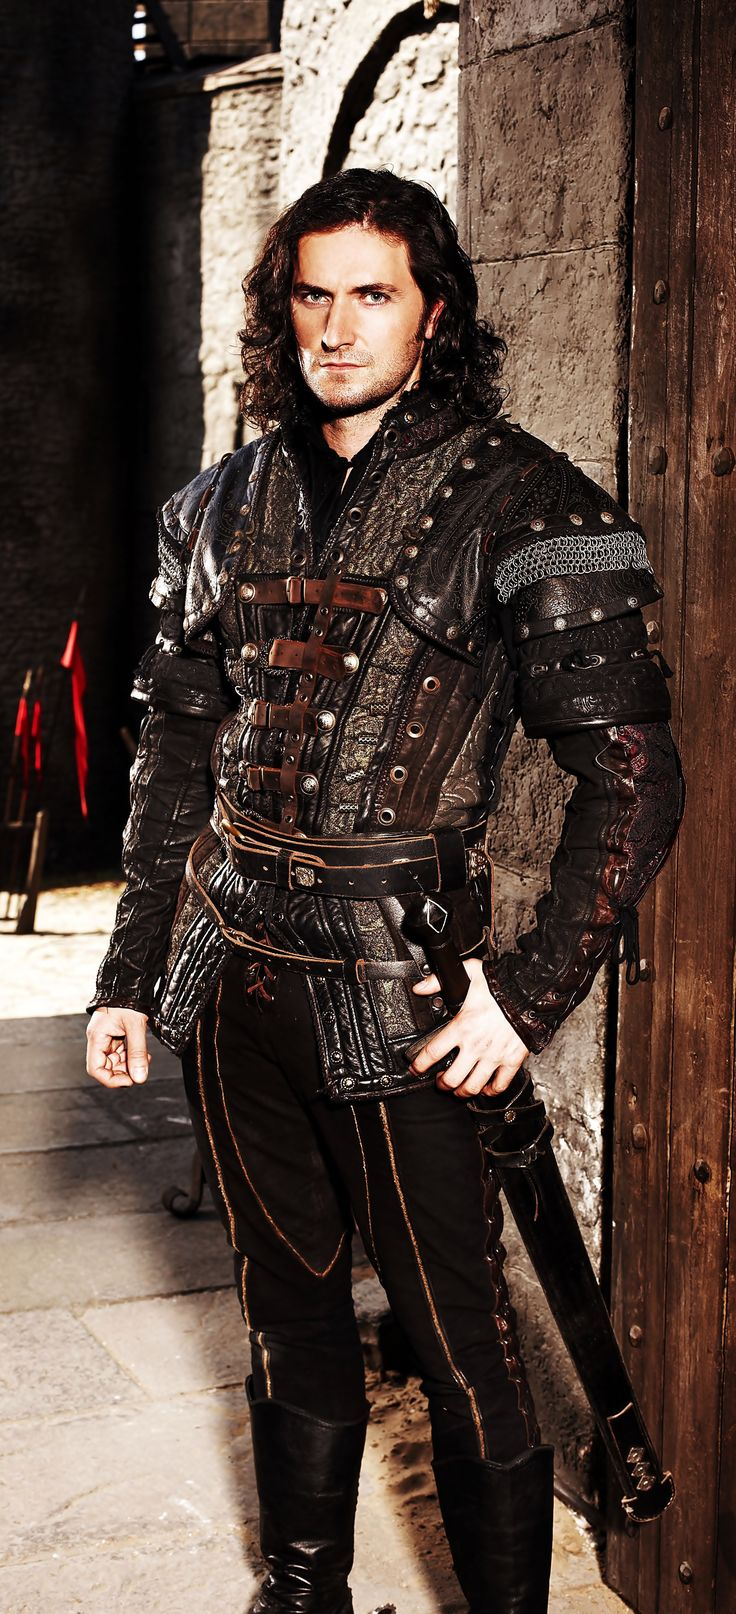 Tybalt's masquerade outfit. Make it all black, remove the sword, add a couple of hidden daggers. Maybe some black wolf fur.